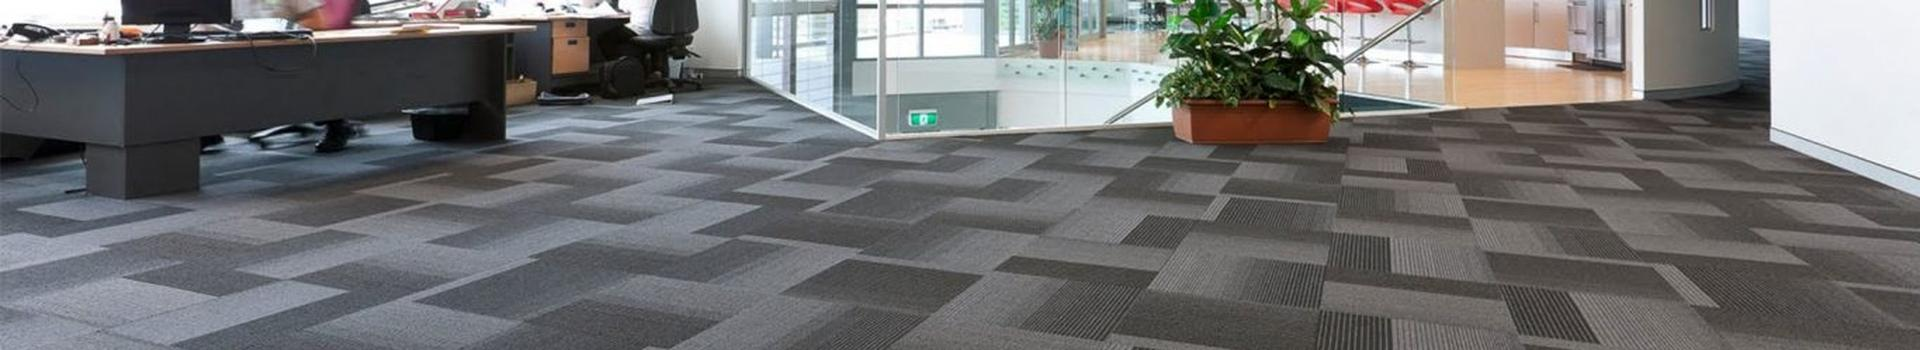 Commercial Carpets & Tiles